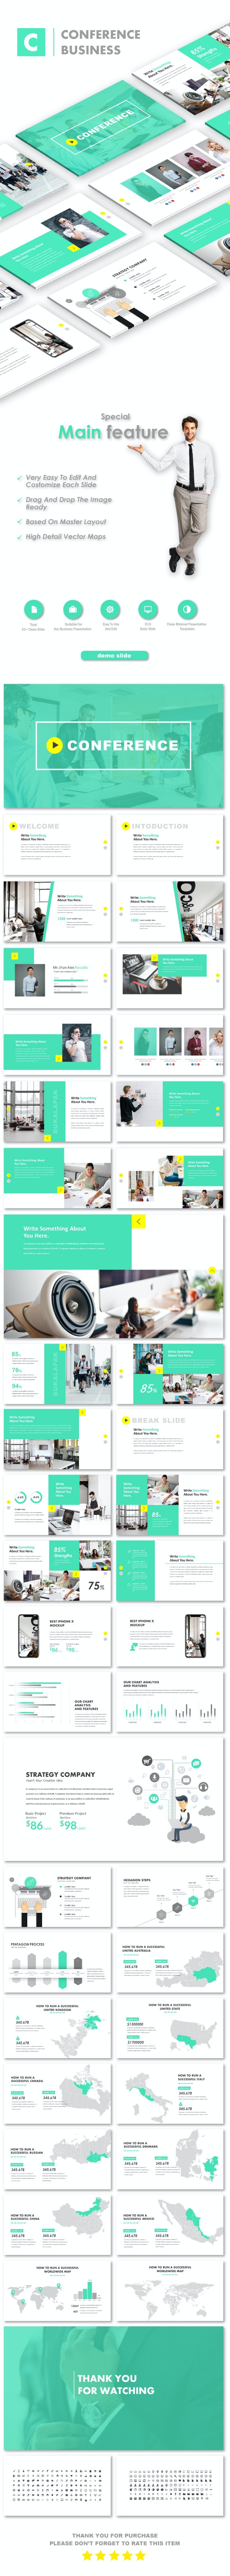 Conference Business PowerPoint Templates - Business PowerPoint Templates